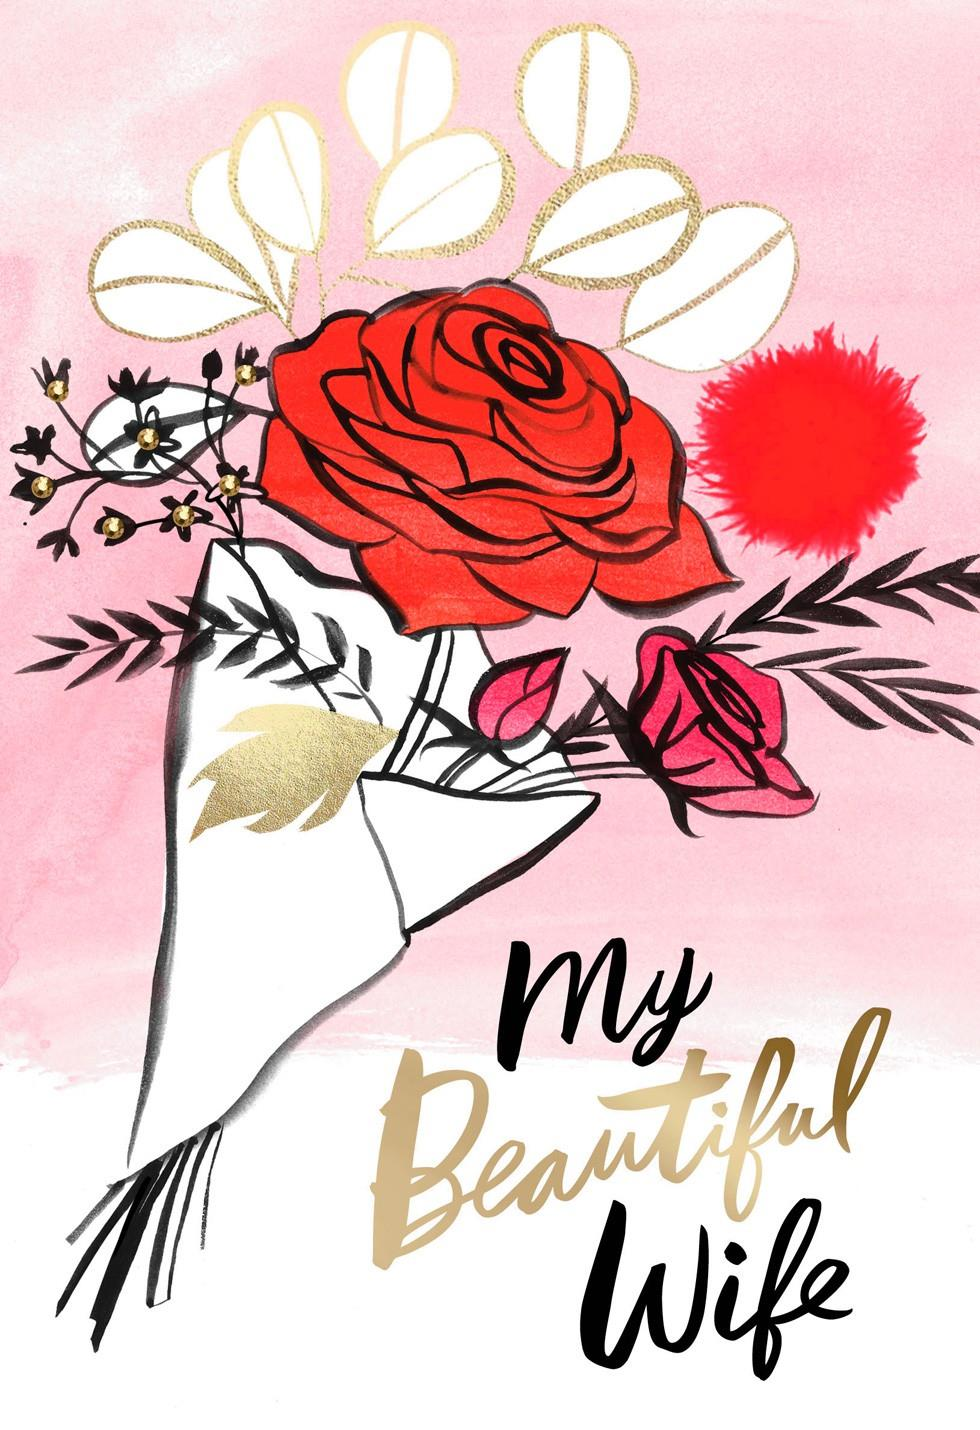 Rose Bouquet for Wife Valentines Day Card Greeting Cards Hallmark – Wife Valentines Day Card